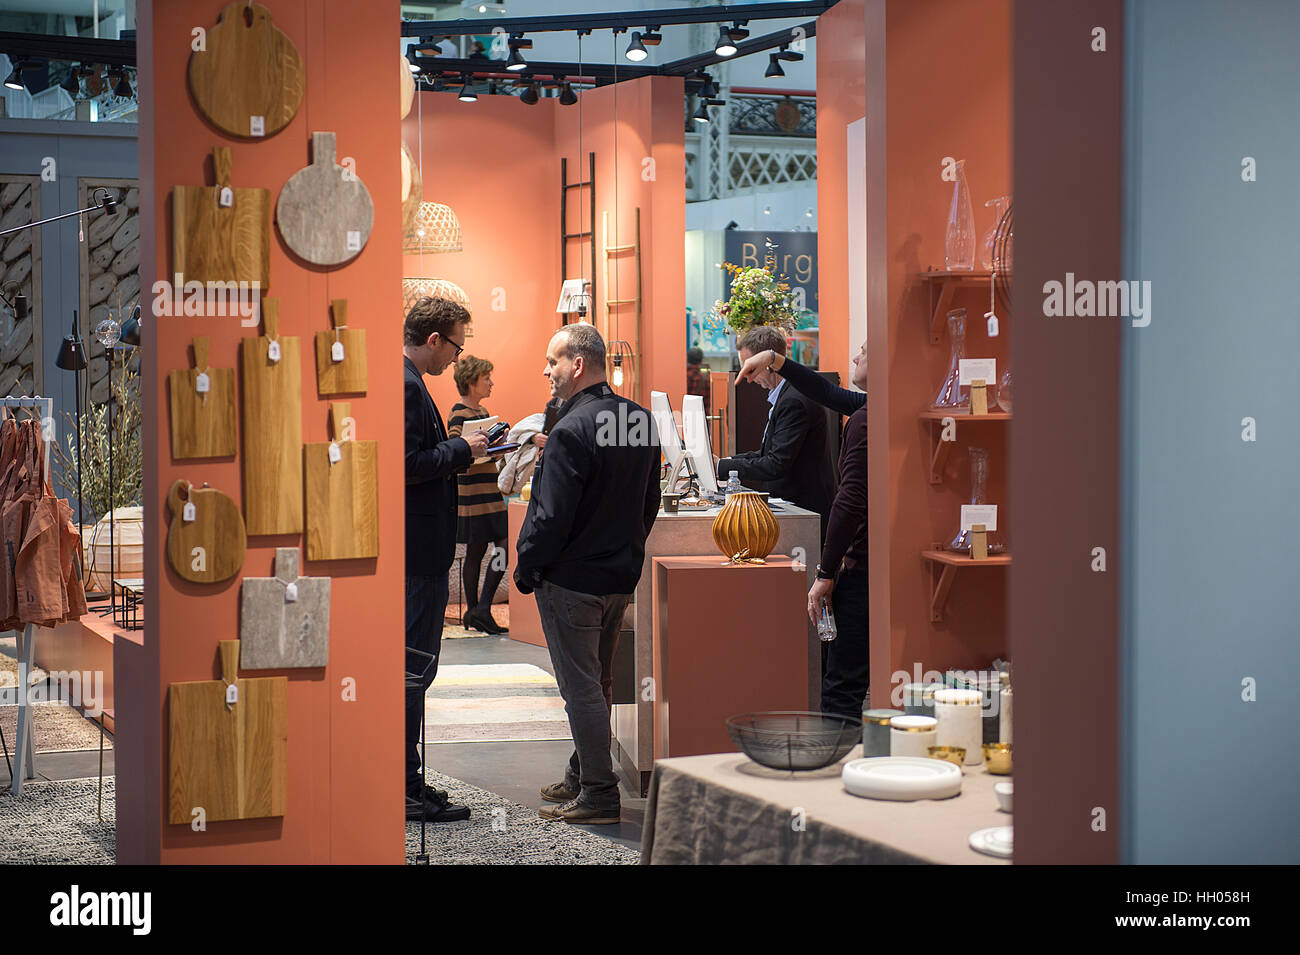 Olympia London Uk Th January  Top Drawer Design Show For Creative Retailers Opens At Olympia Bringing Original And Fresh Ideas From New Talent